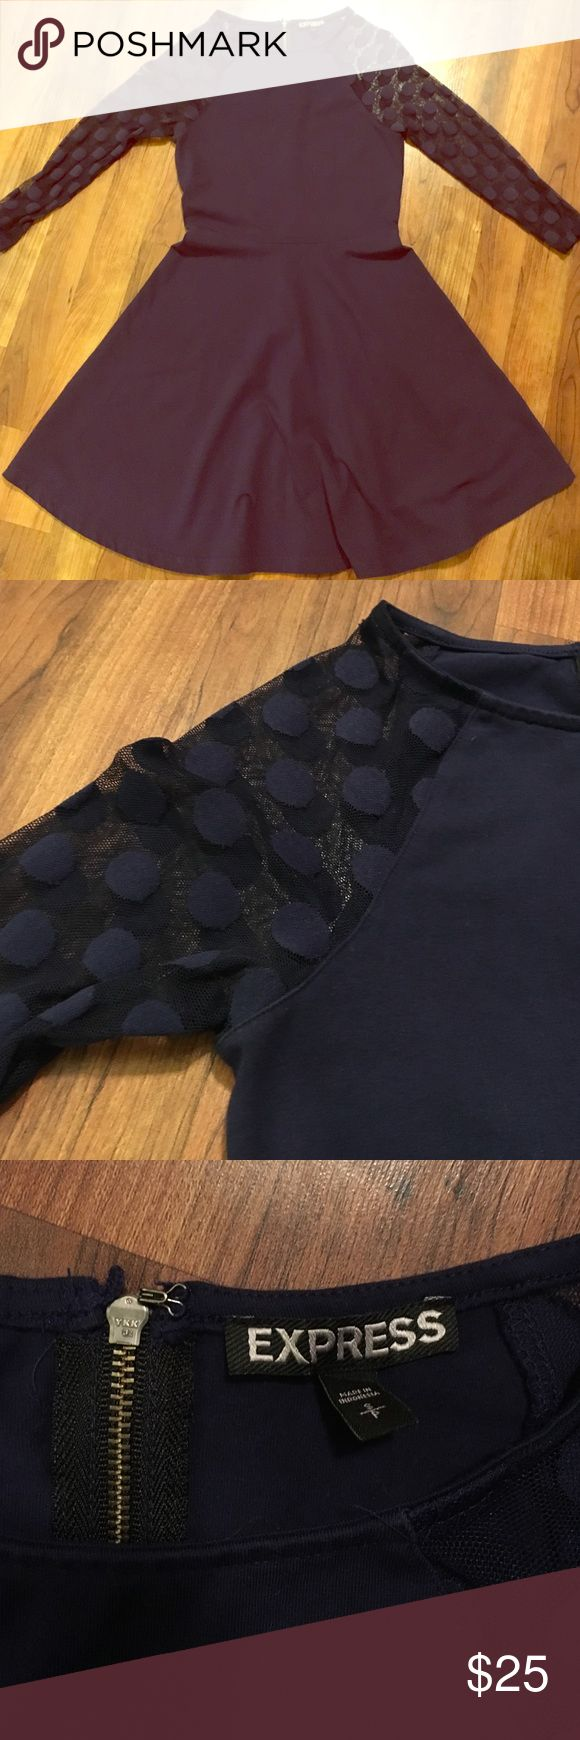 Express  Navy Sheer Polka Dot sleeve dress Great condition! Only worn a few times! Fabric is cotton and spandex. Open to all offers! Express Dresses Long Sleeve